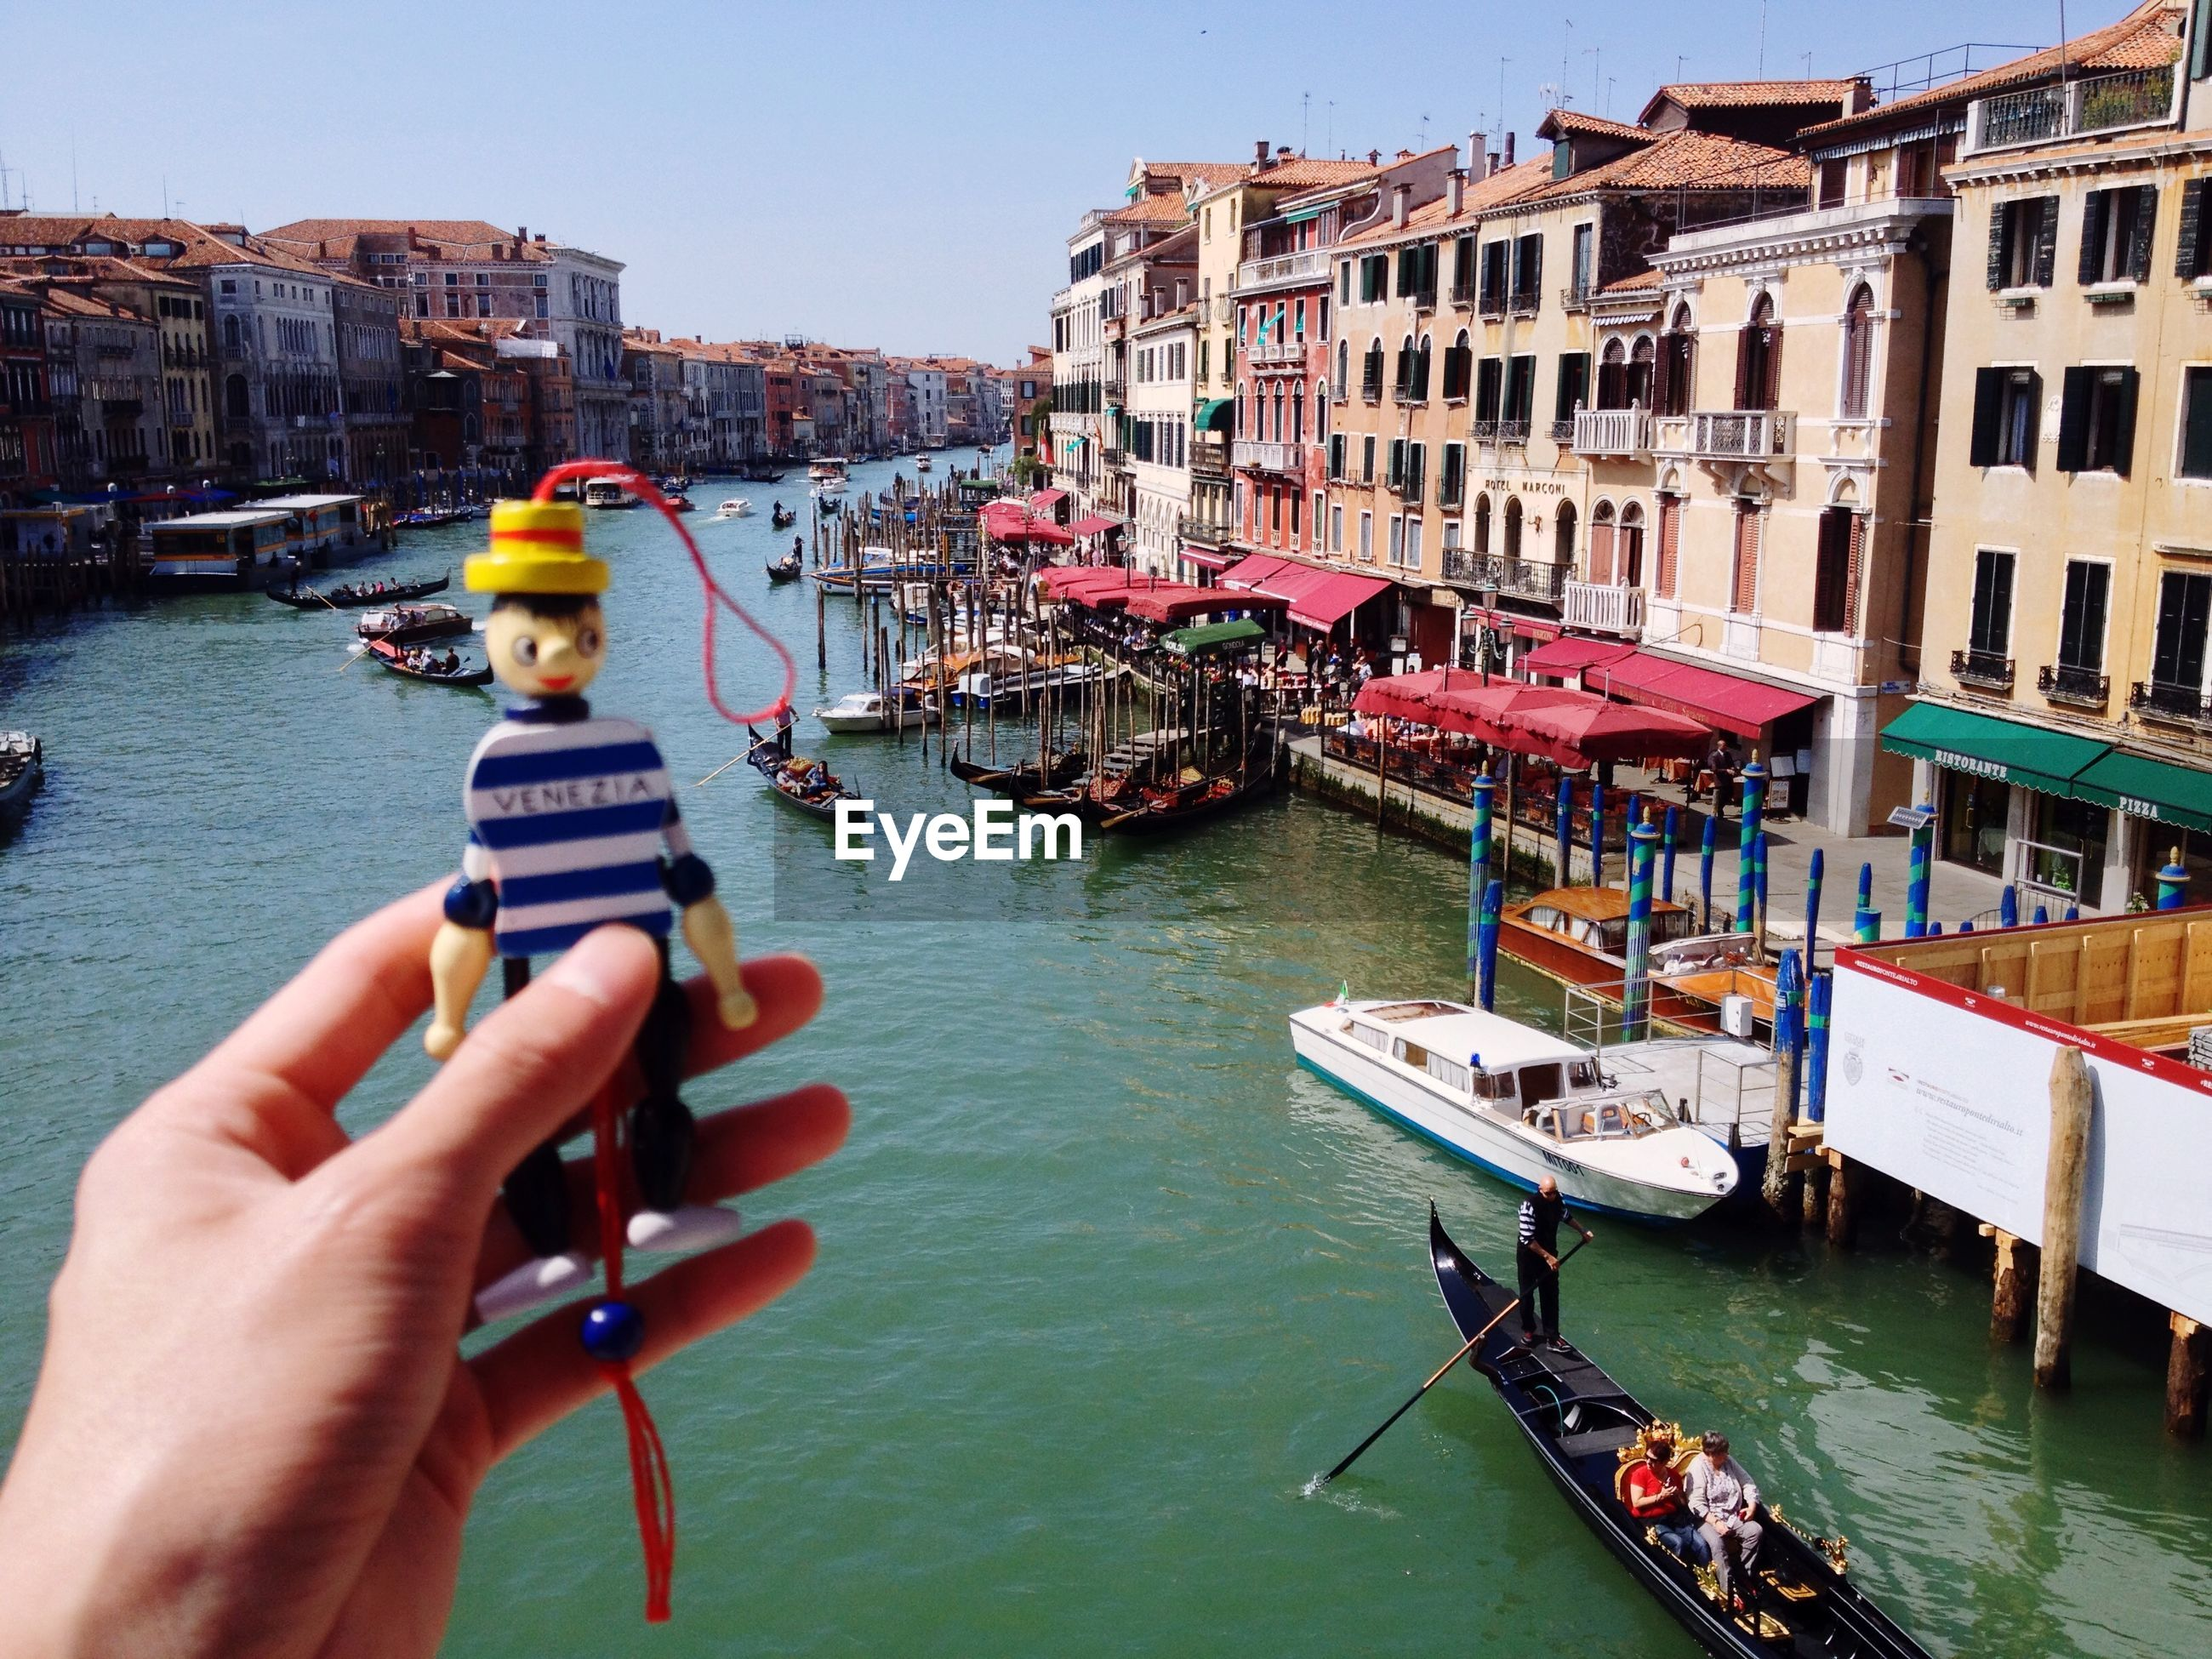 Cropped image of person holding toy by grand canal against clear sky